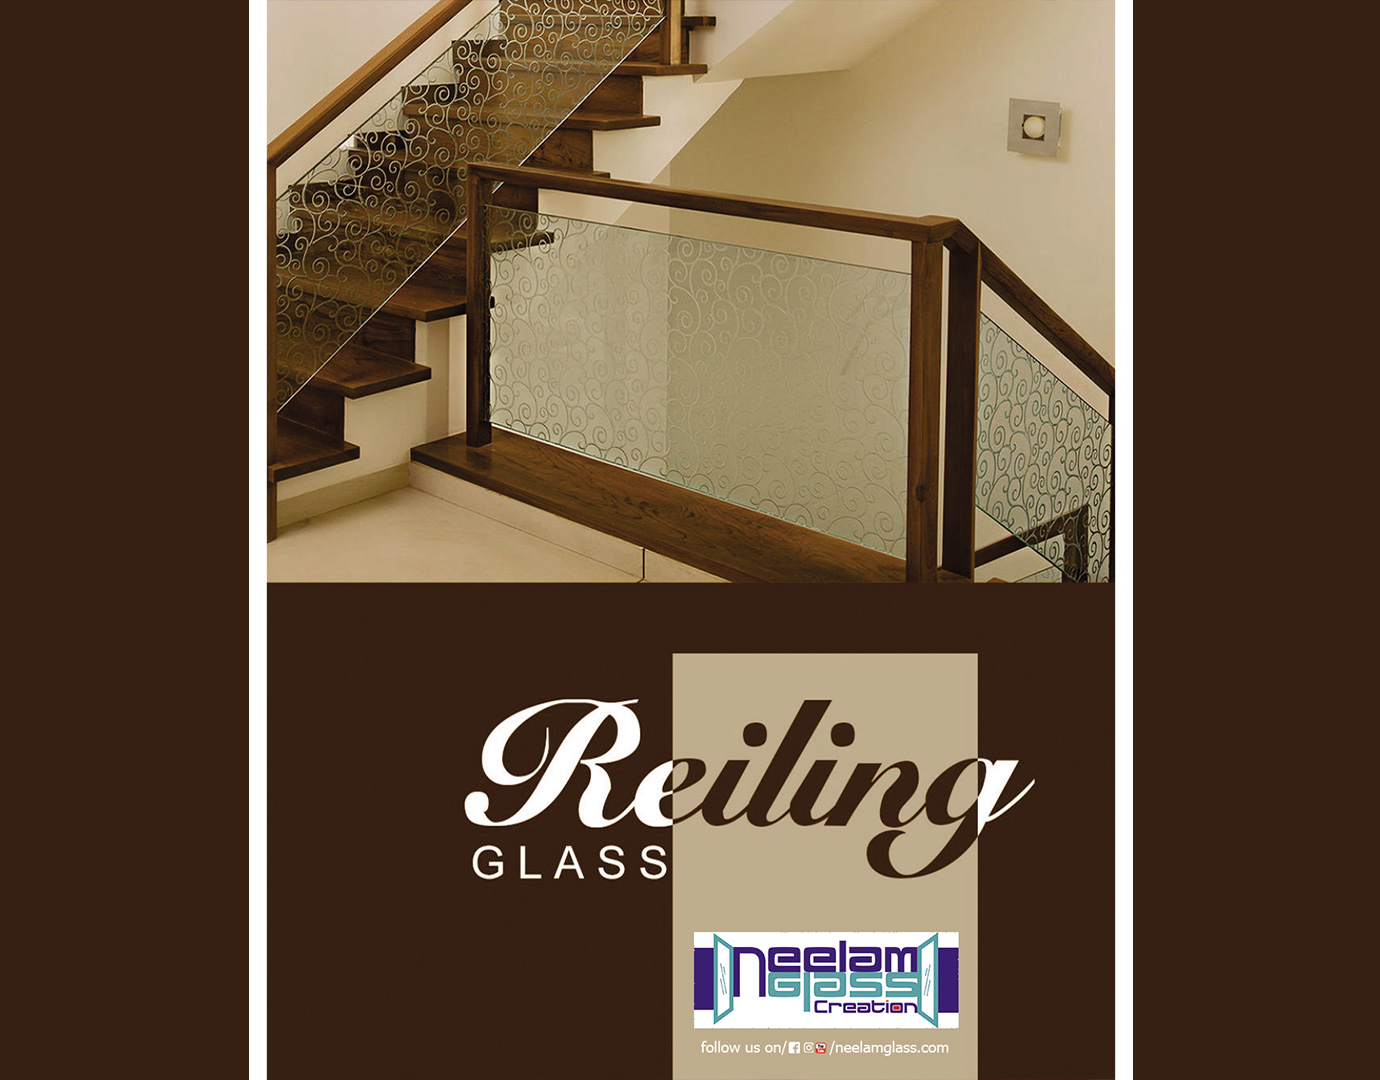 12.railing glass